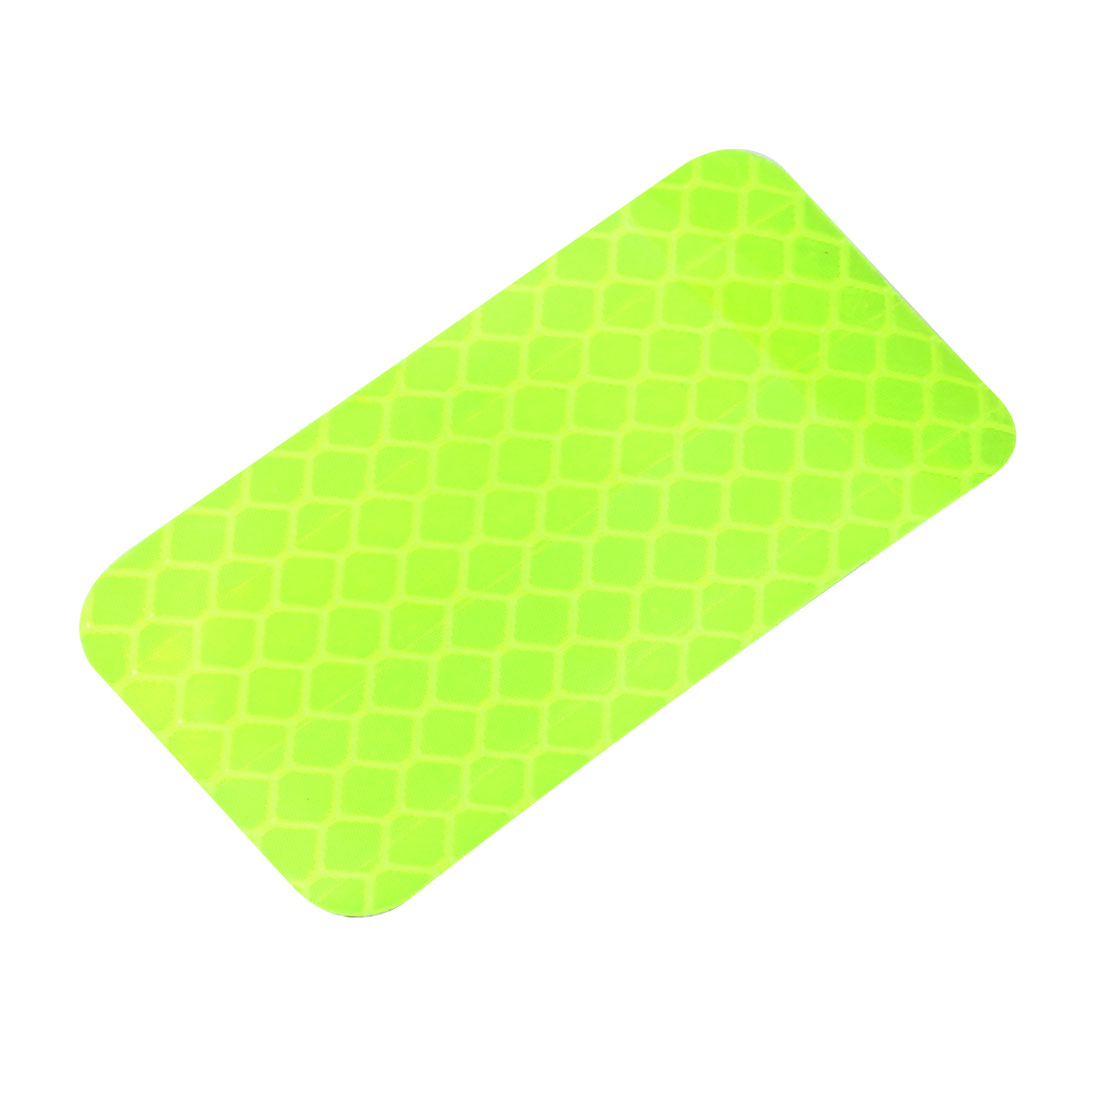 Honeycomb Reflective Warning Tape Film Sticker Yellow 30mm x 60mm